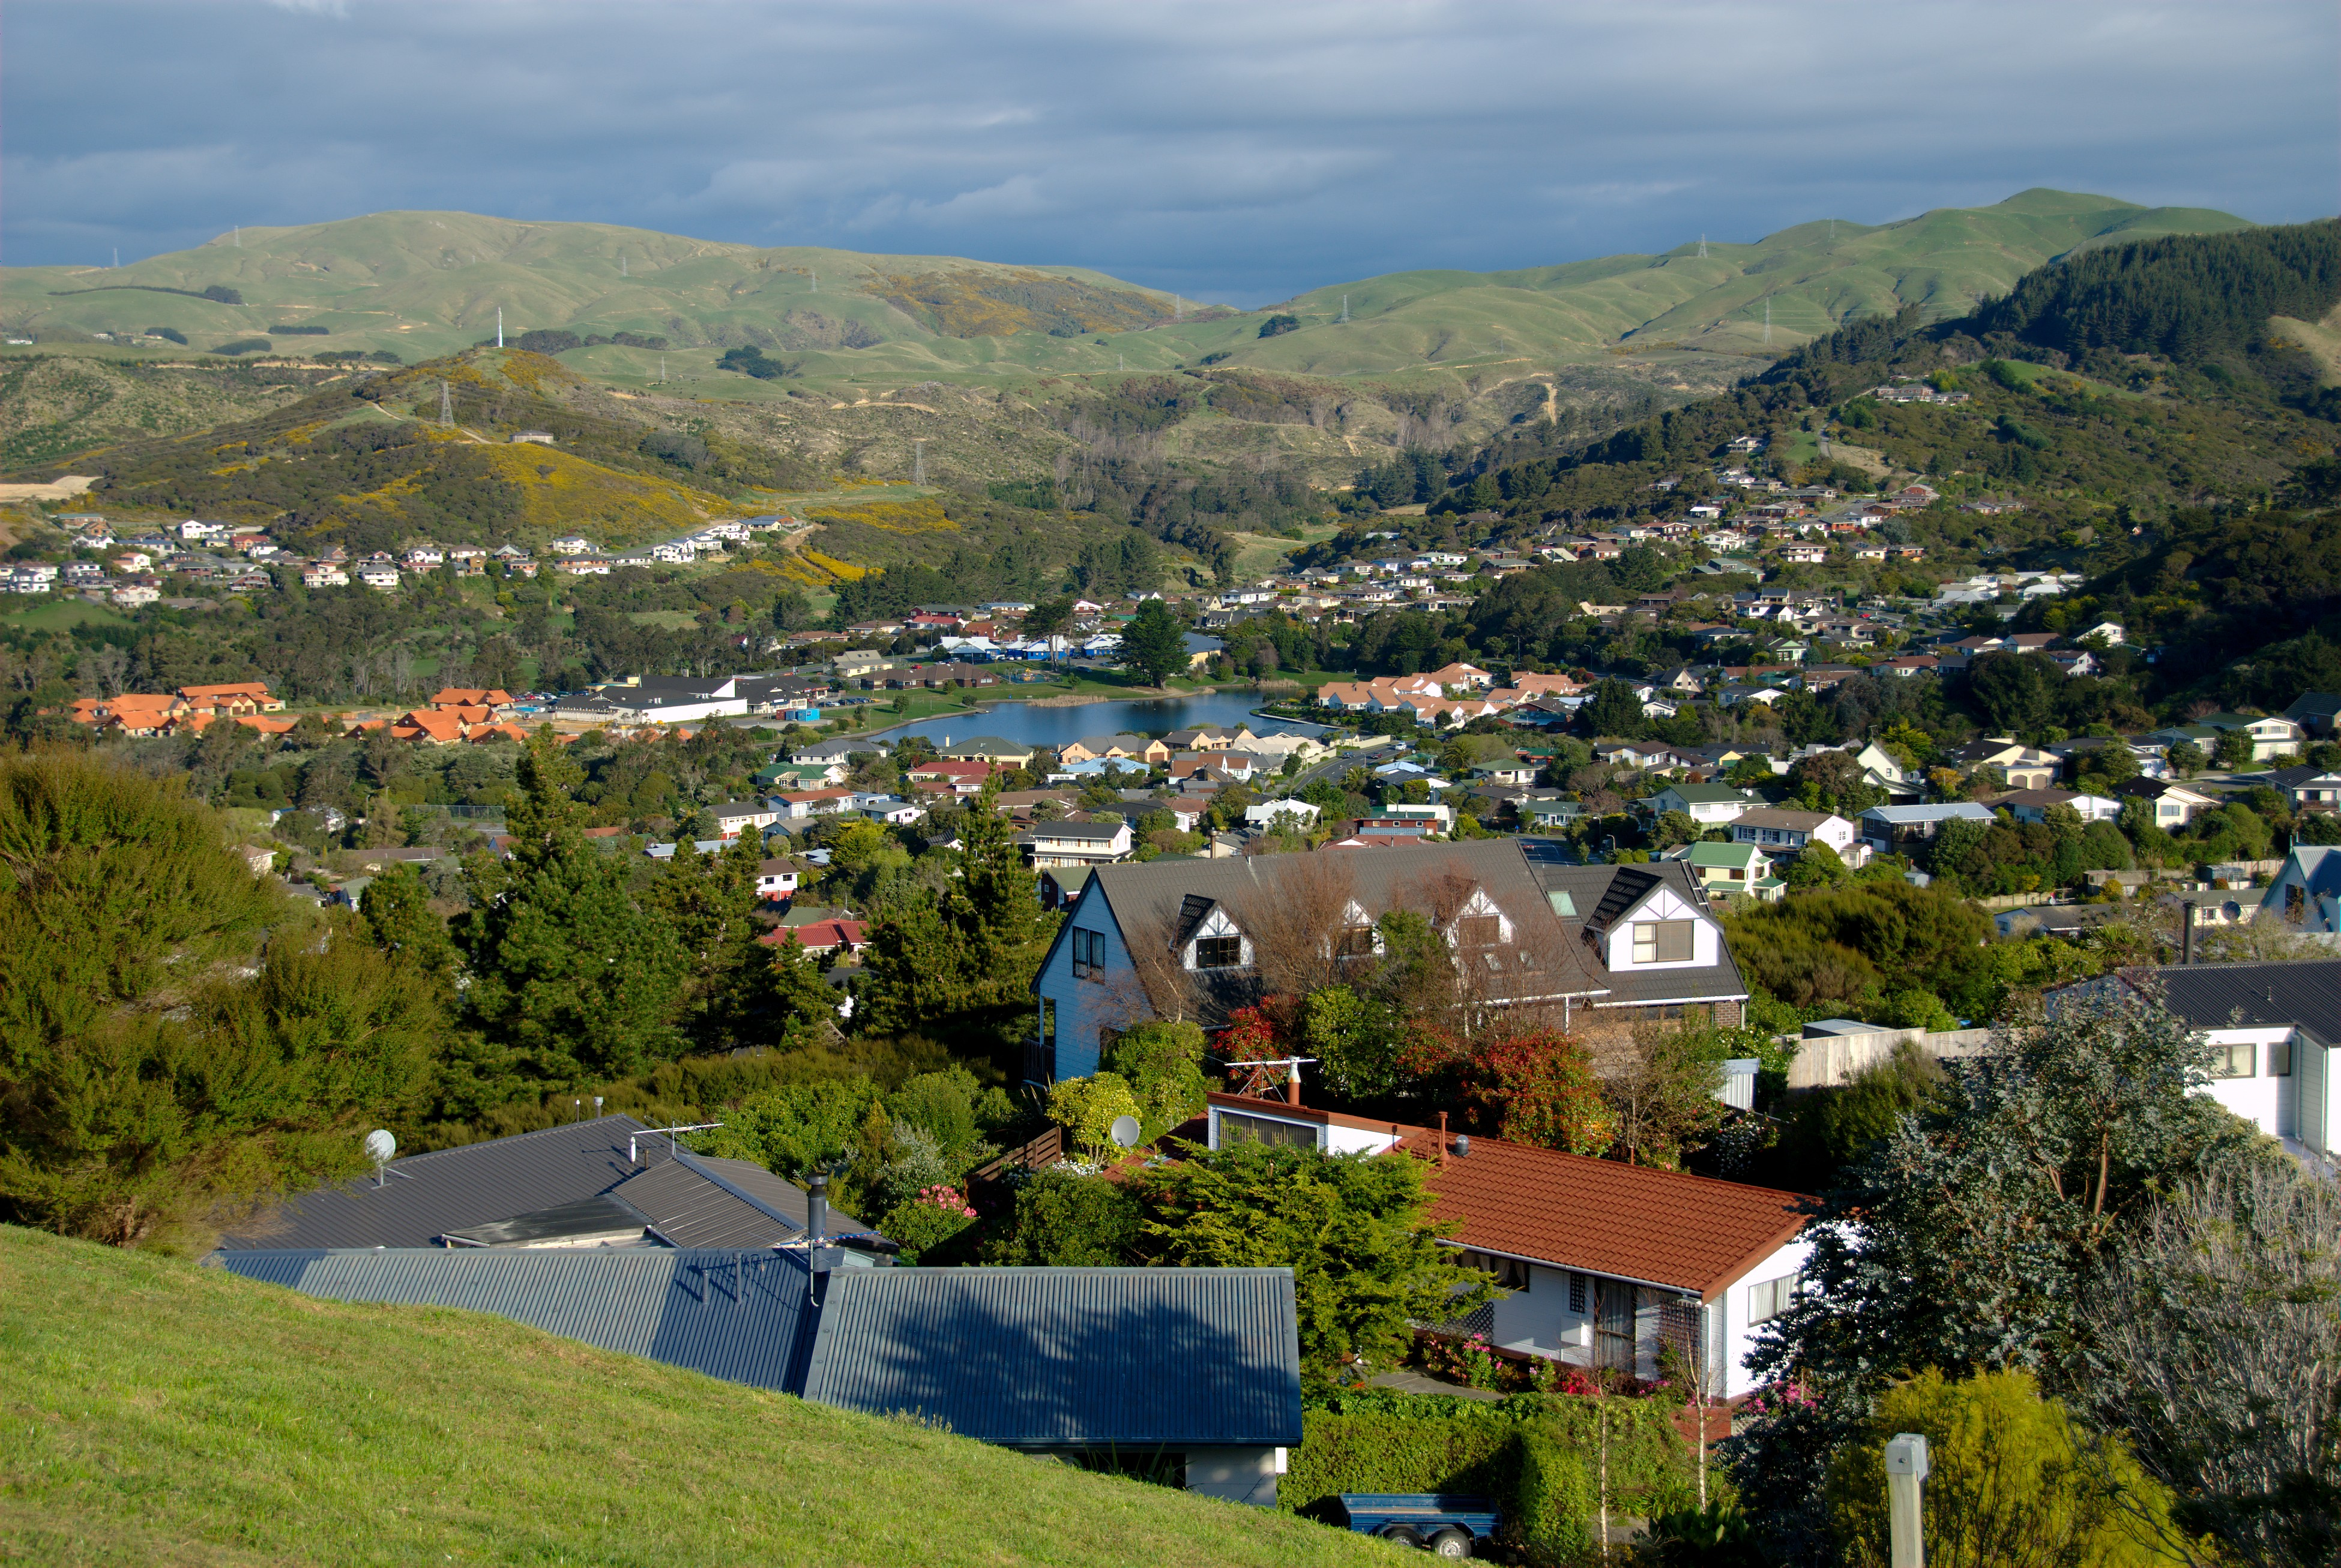 File:Whitby, New Zealand, with the lower lake.jpg - Wikipedia, the ...